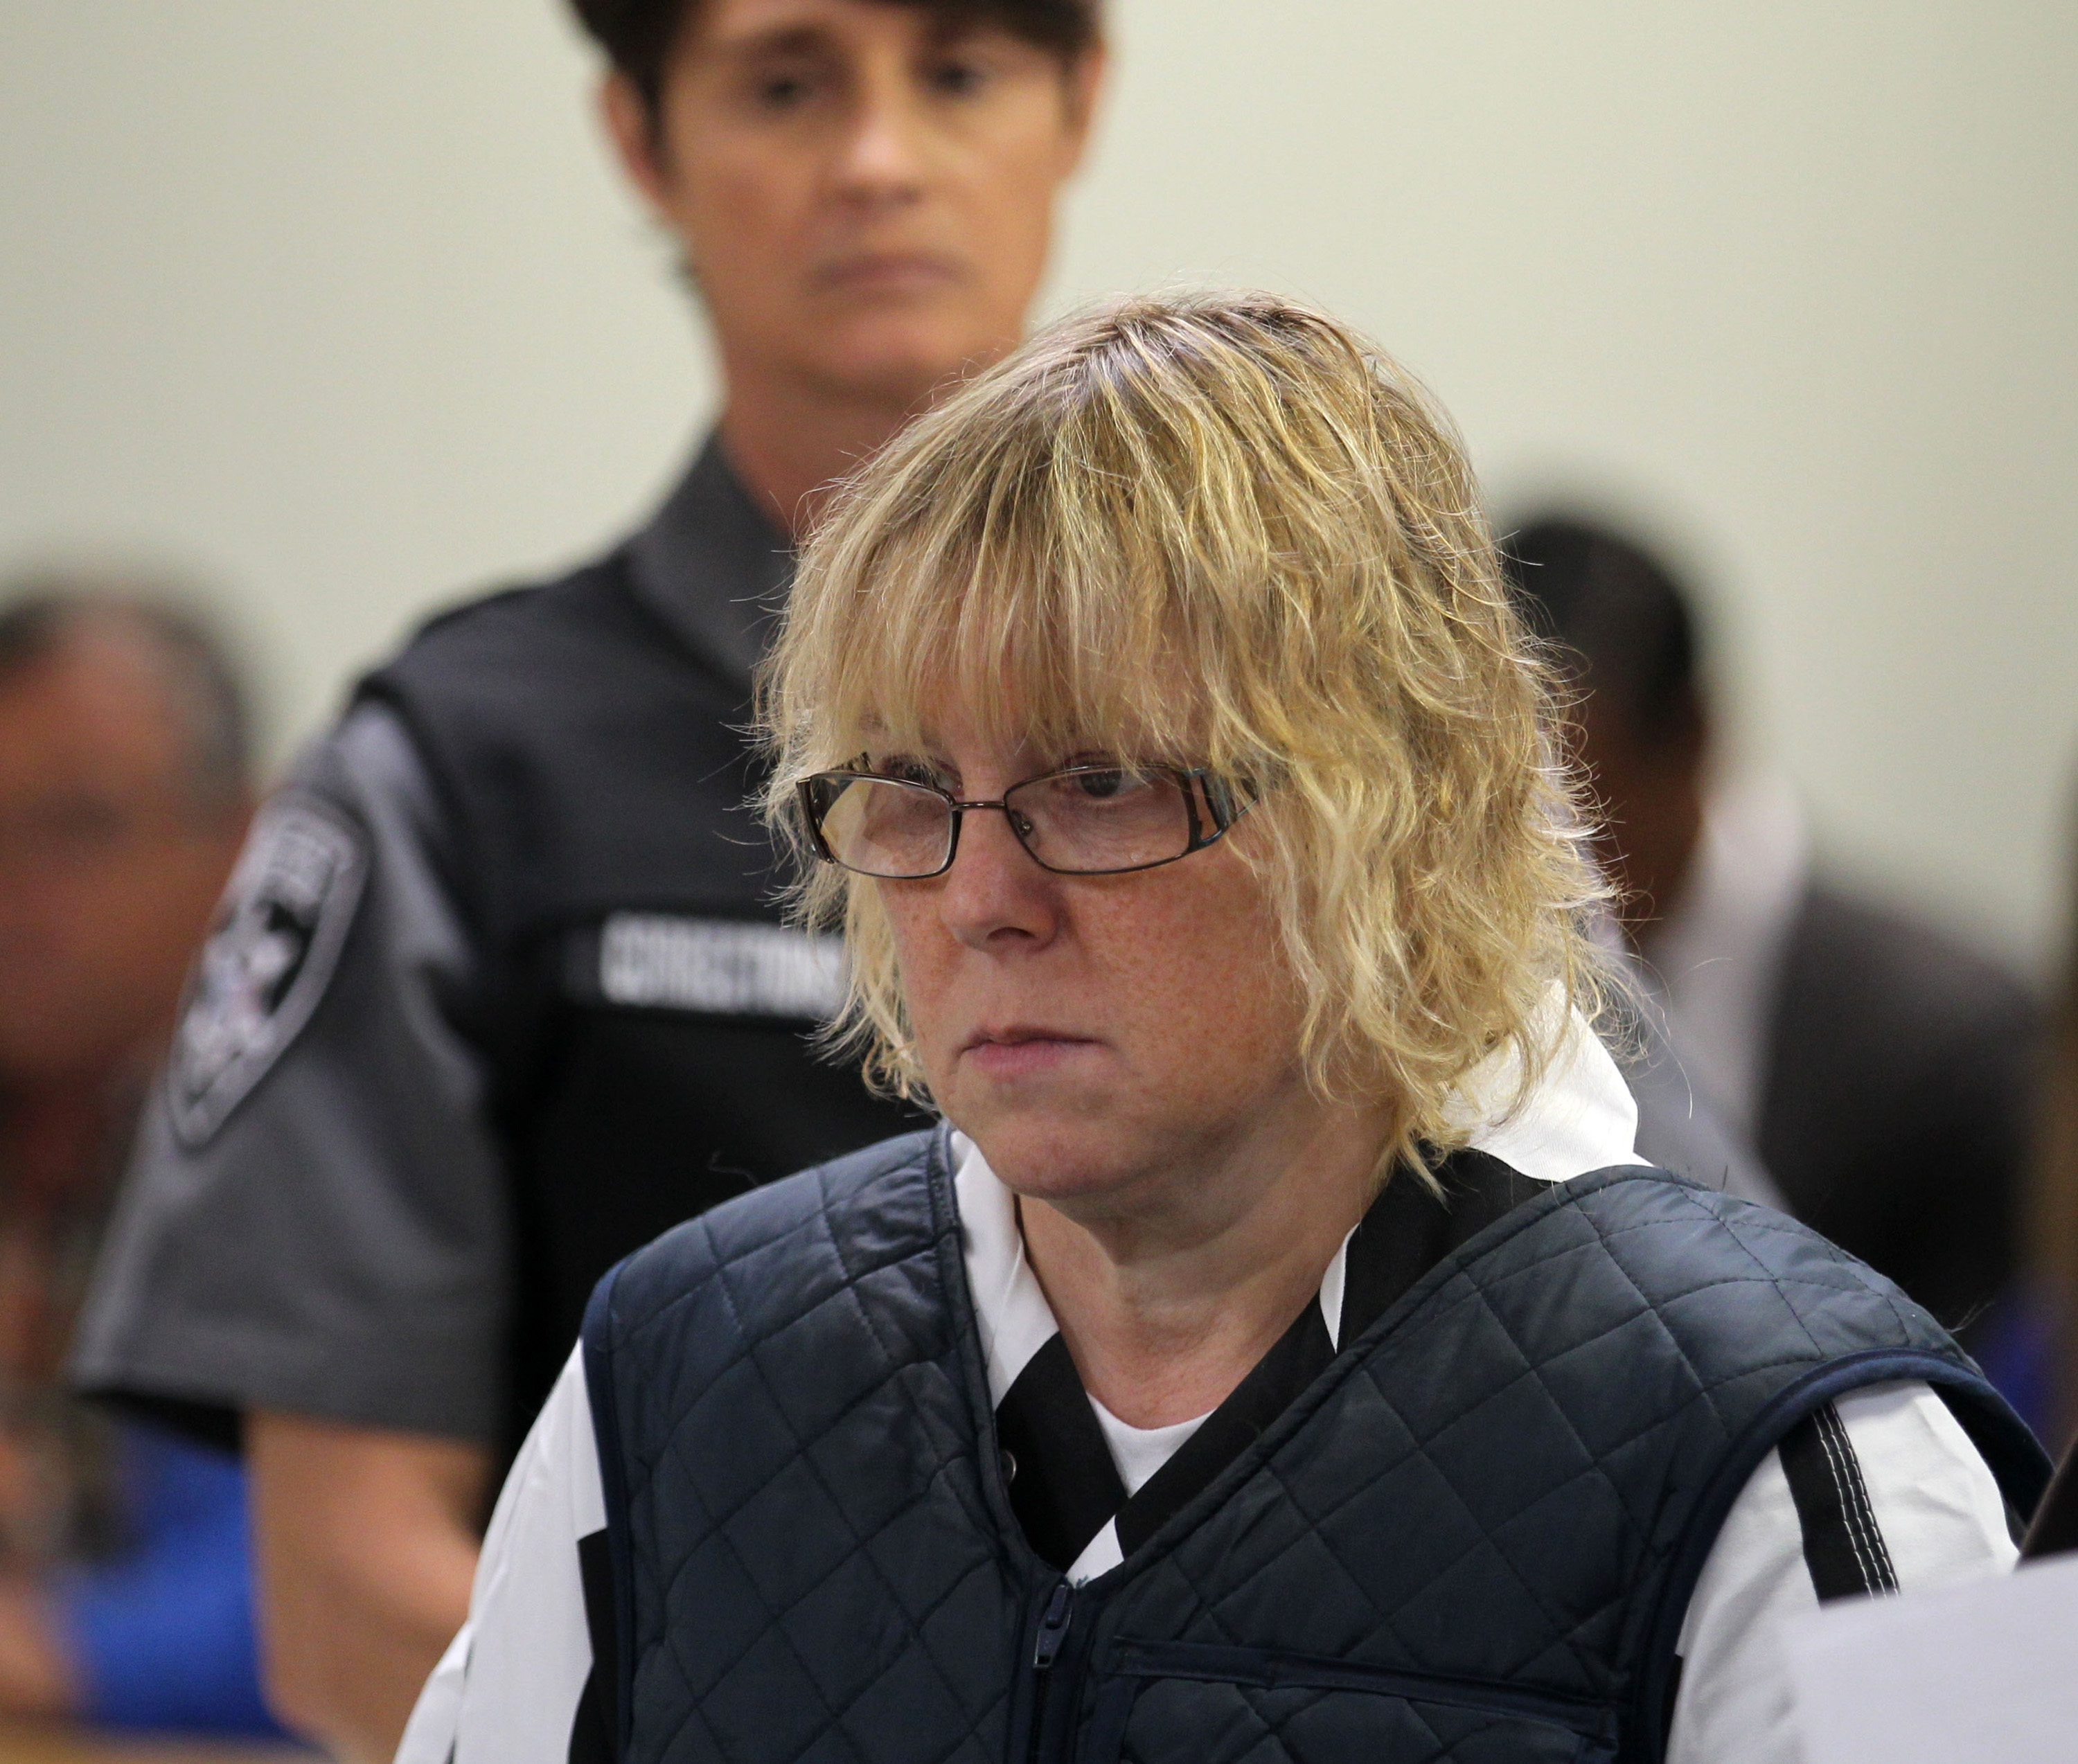 Joyce Mitchell (L) appears before Judge Buck Rogers in Plattsburgh City Court on June 15, 2015 in Plattsburgh, New York. Mitchell allegedly aided inmates Richard Matt and David Sweat in their escape from Clinton Correctional Facility.